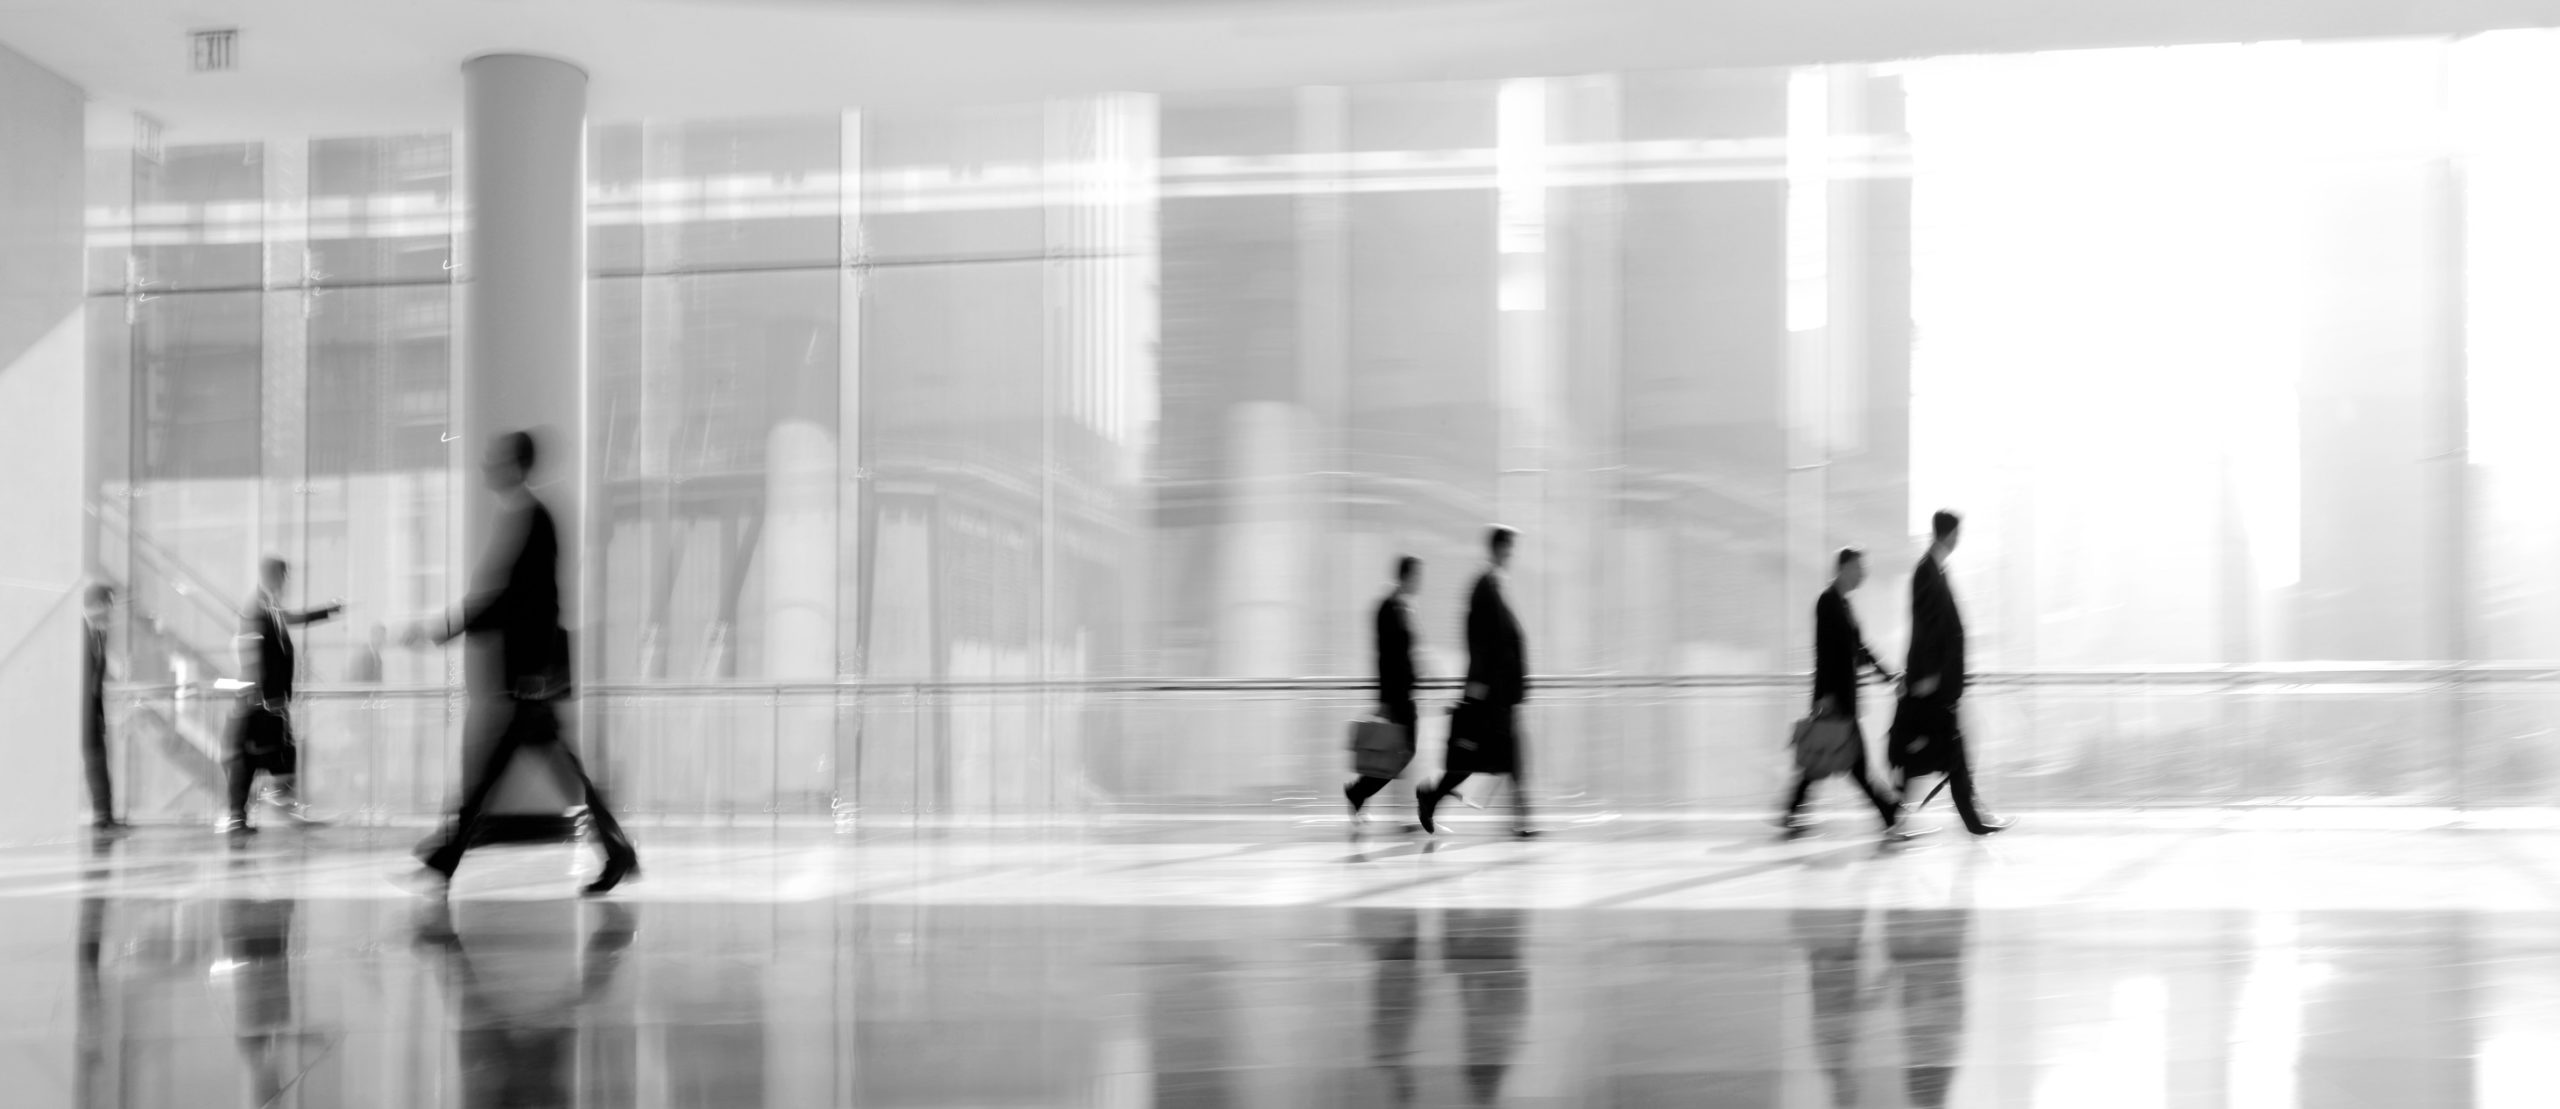 abstrakt image of people in the lobby of a modern business center with a blurred background